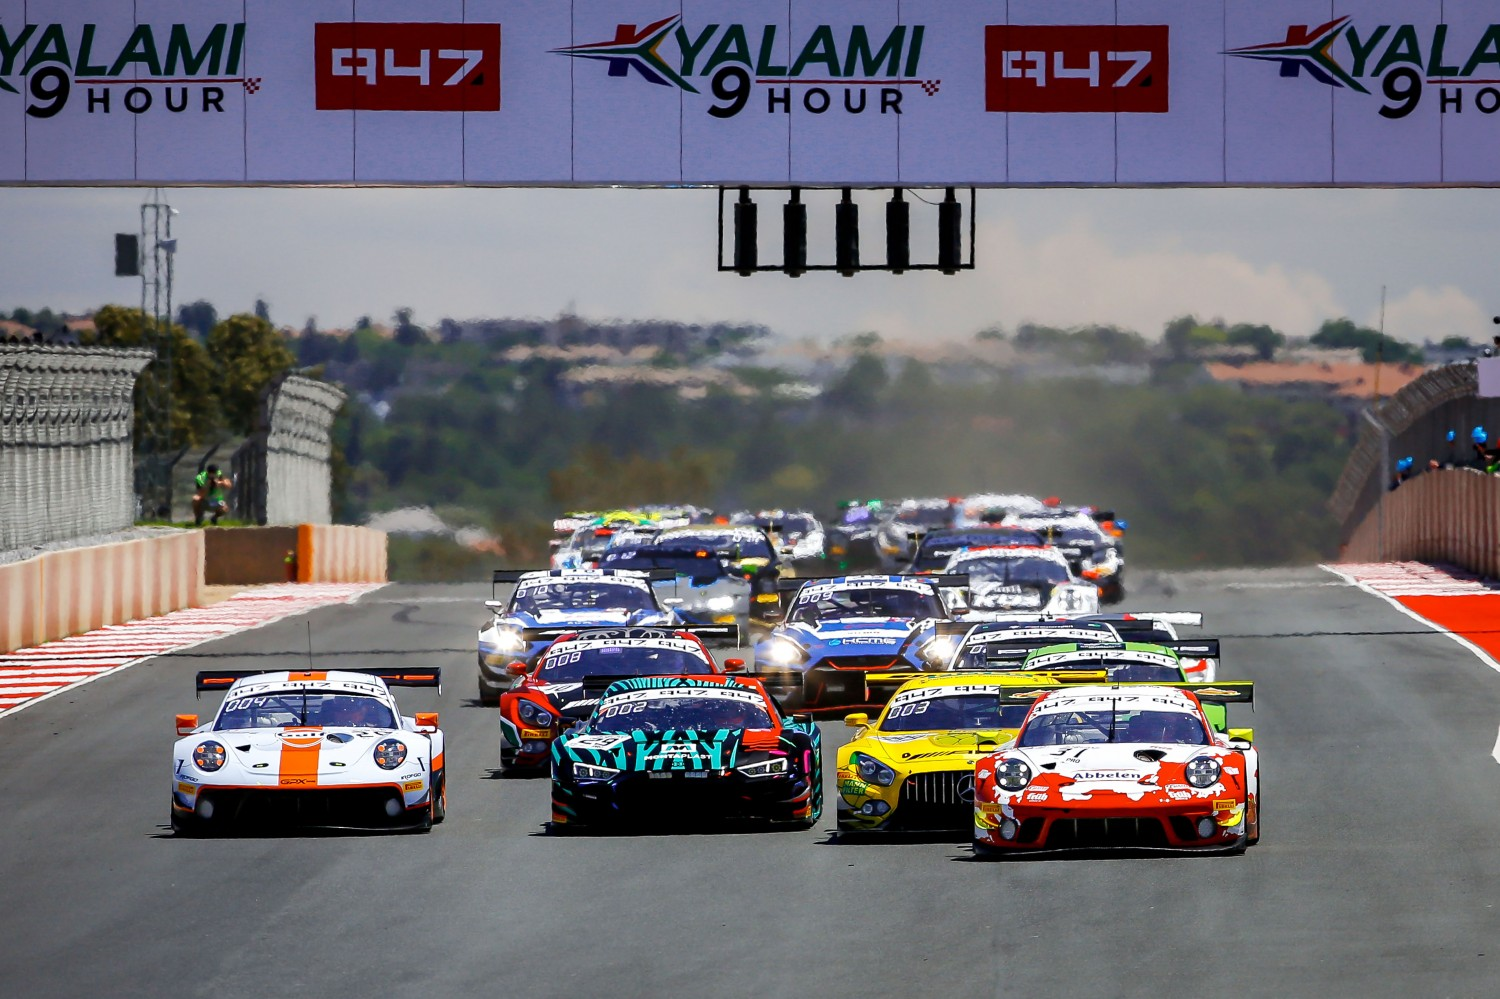 Kyalami 9 Hour plays host to Intercontinental GT Challenge Powered by Pirelli title decider